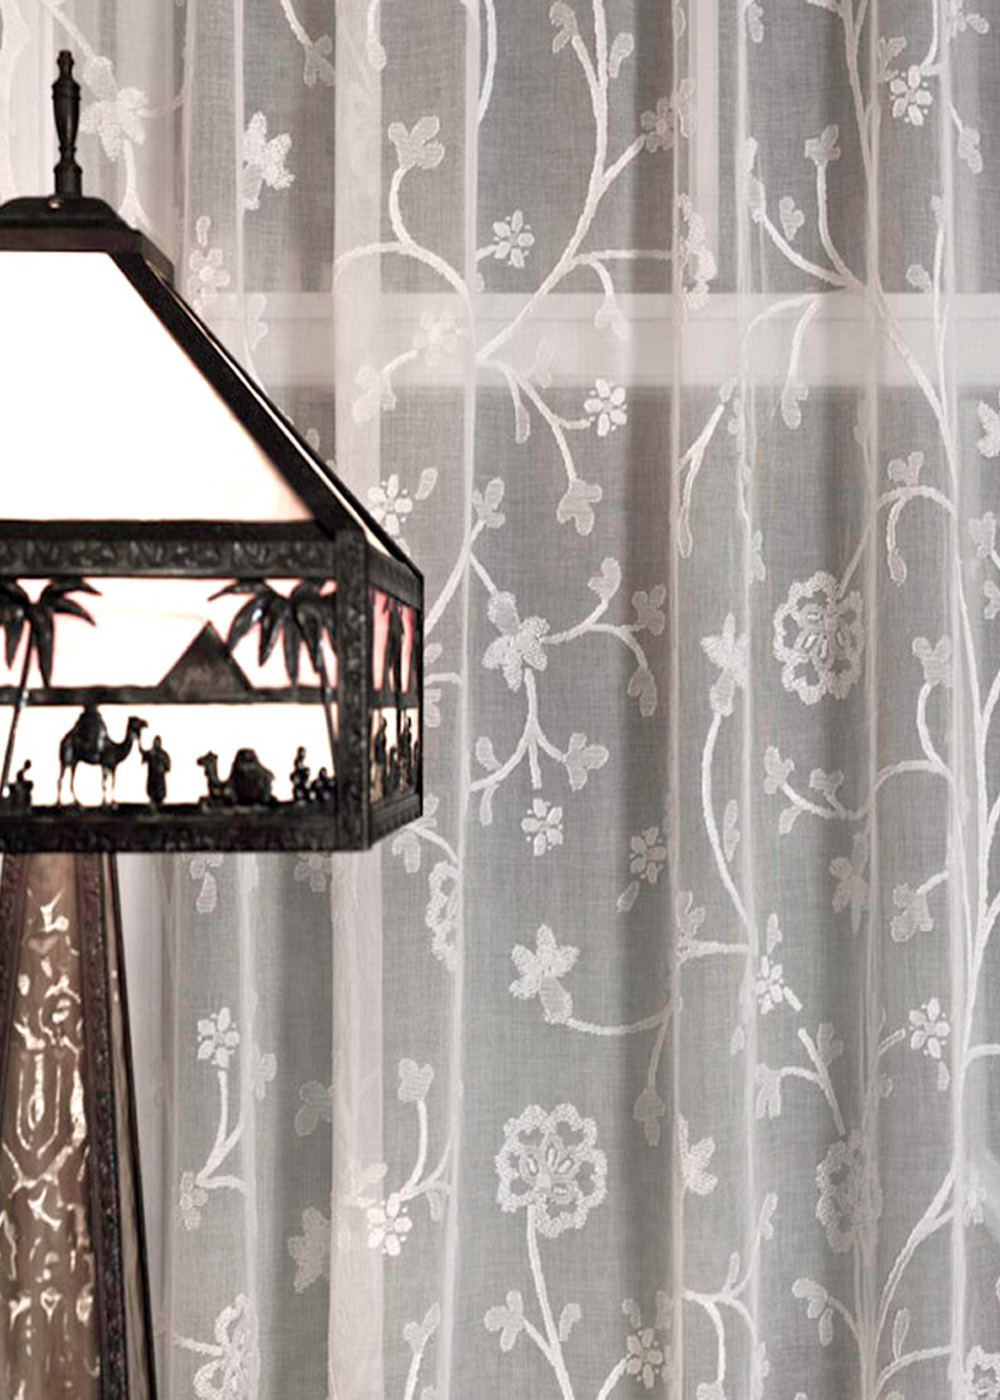 Cotton lace curtains - Thistle Madras Lace Curtain And Yardage